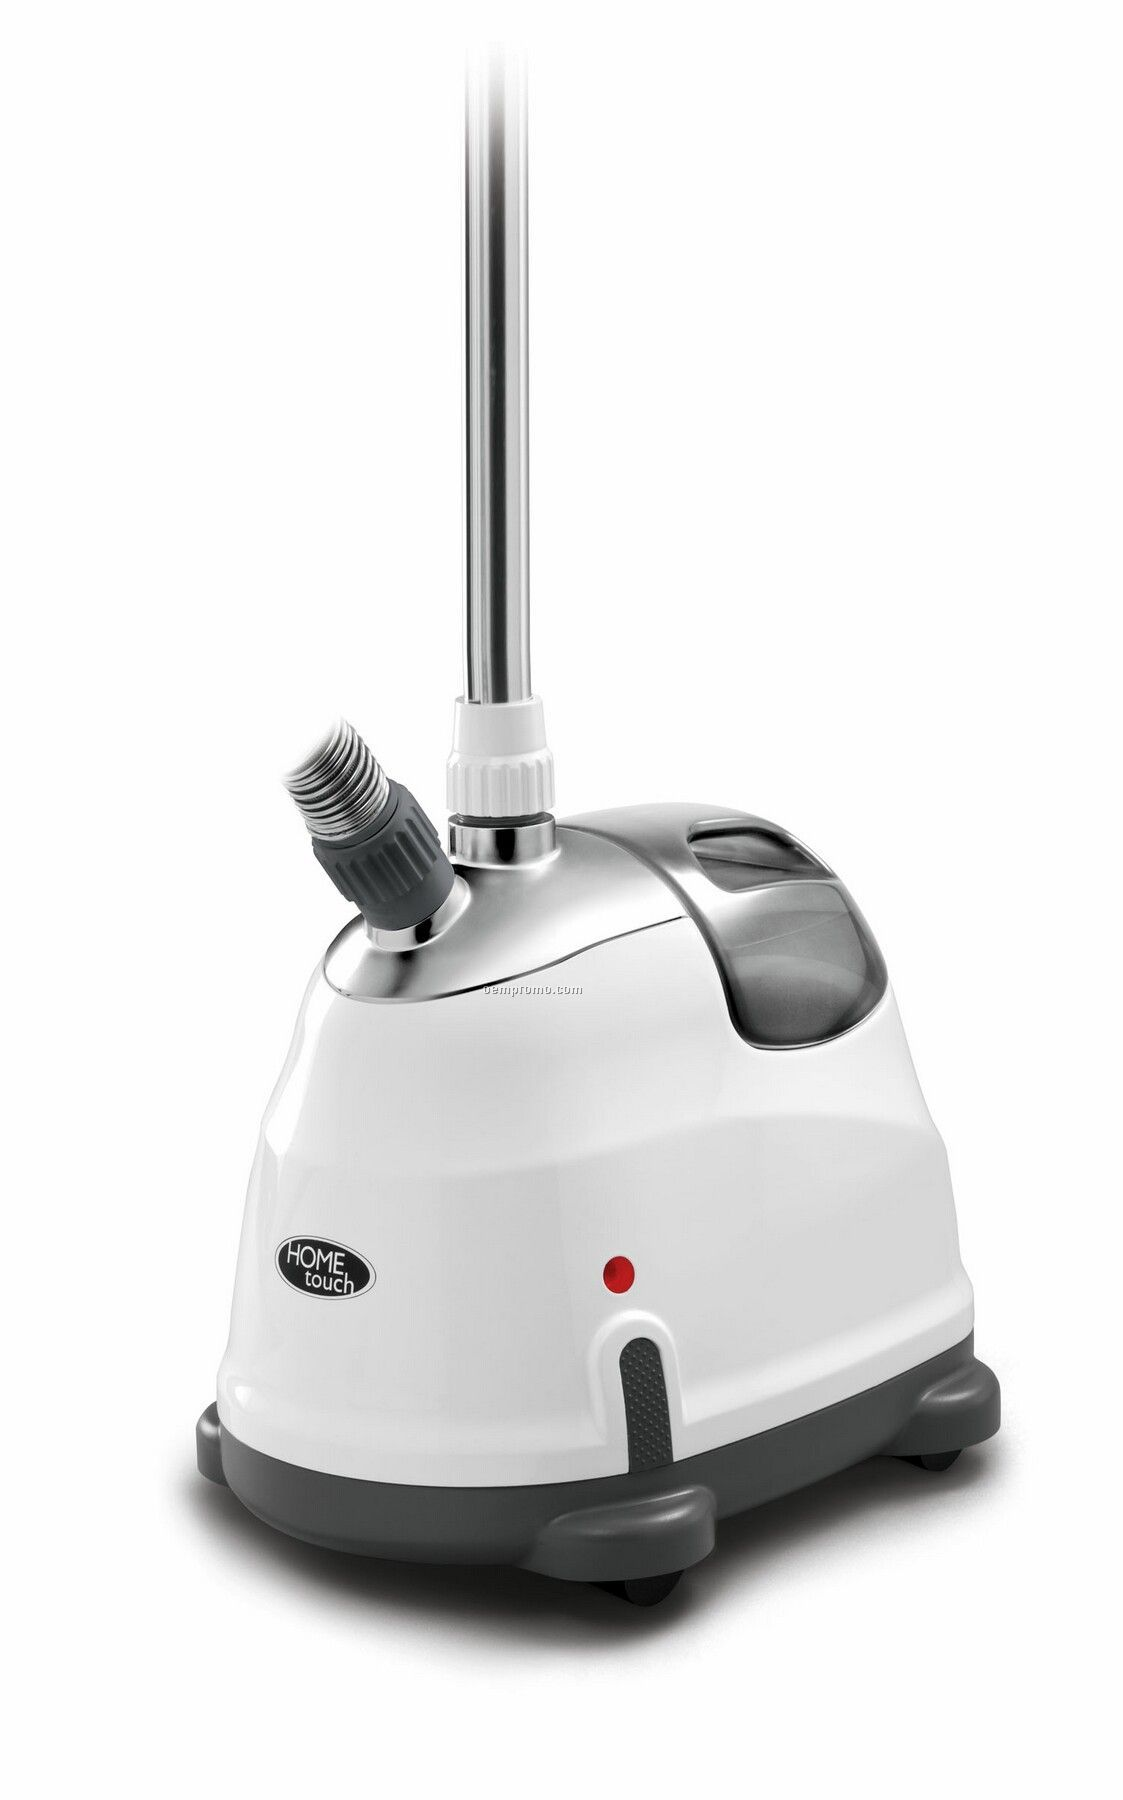 Home Touch Perfect Steam Deluxe Commercial Garment Steamer